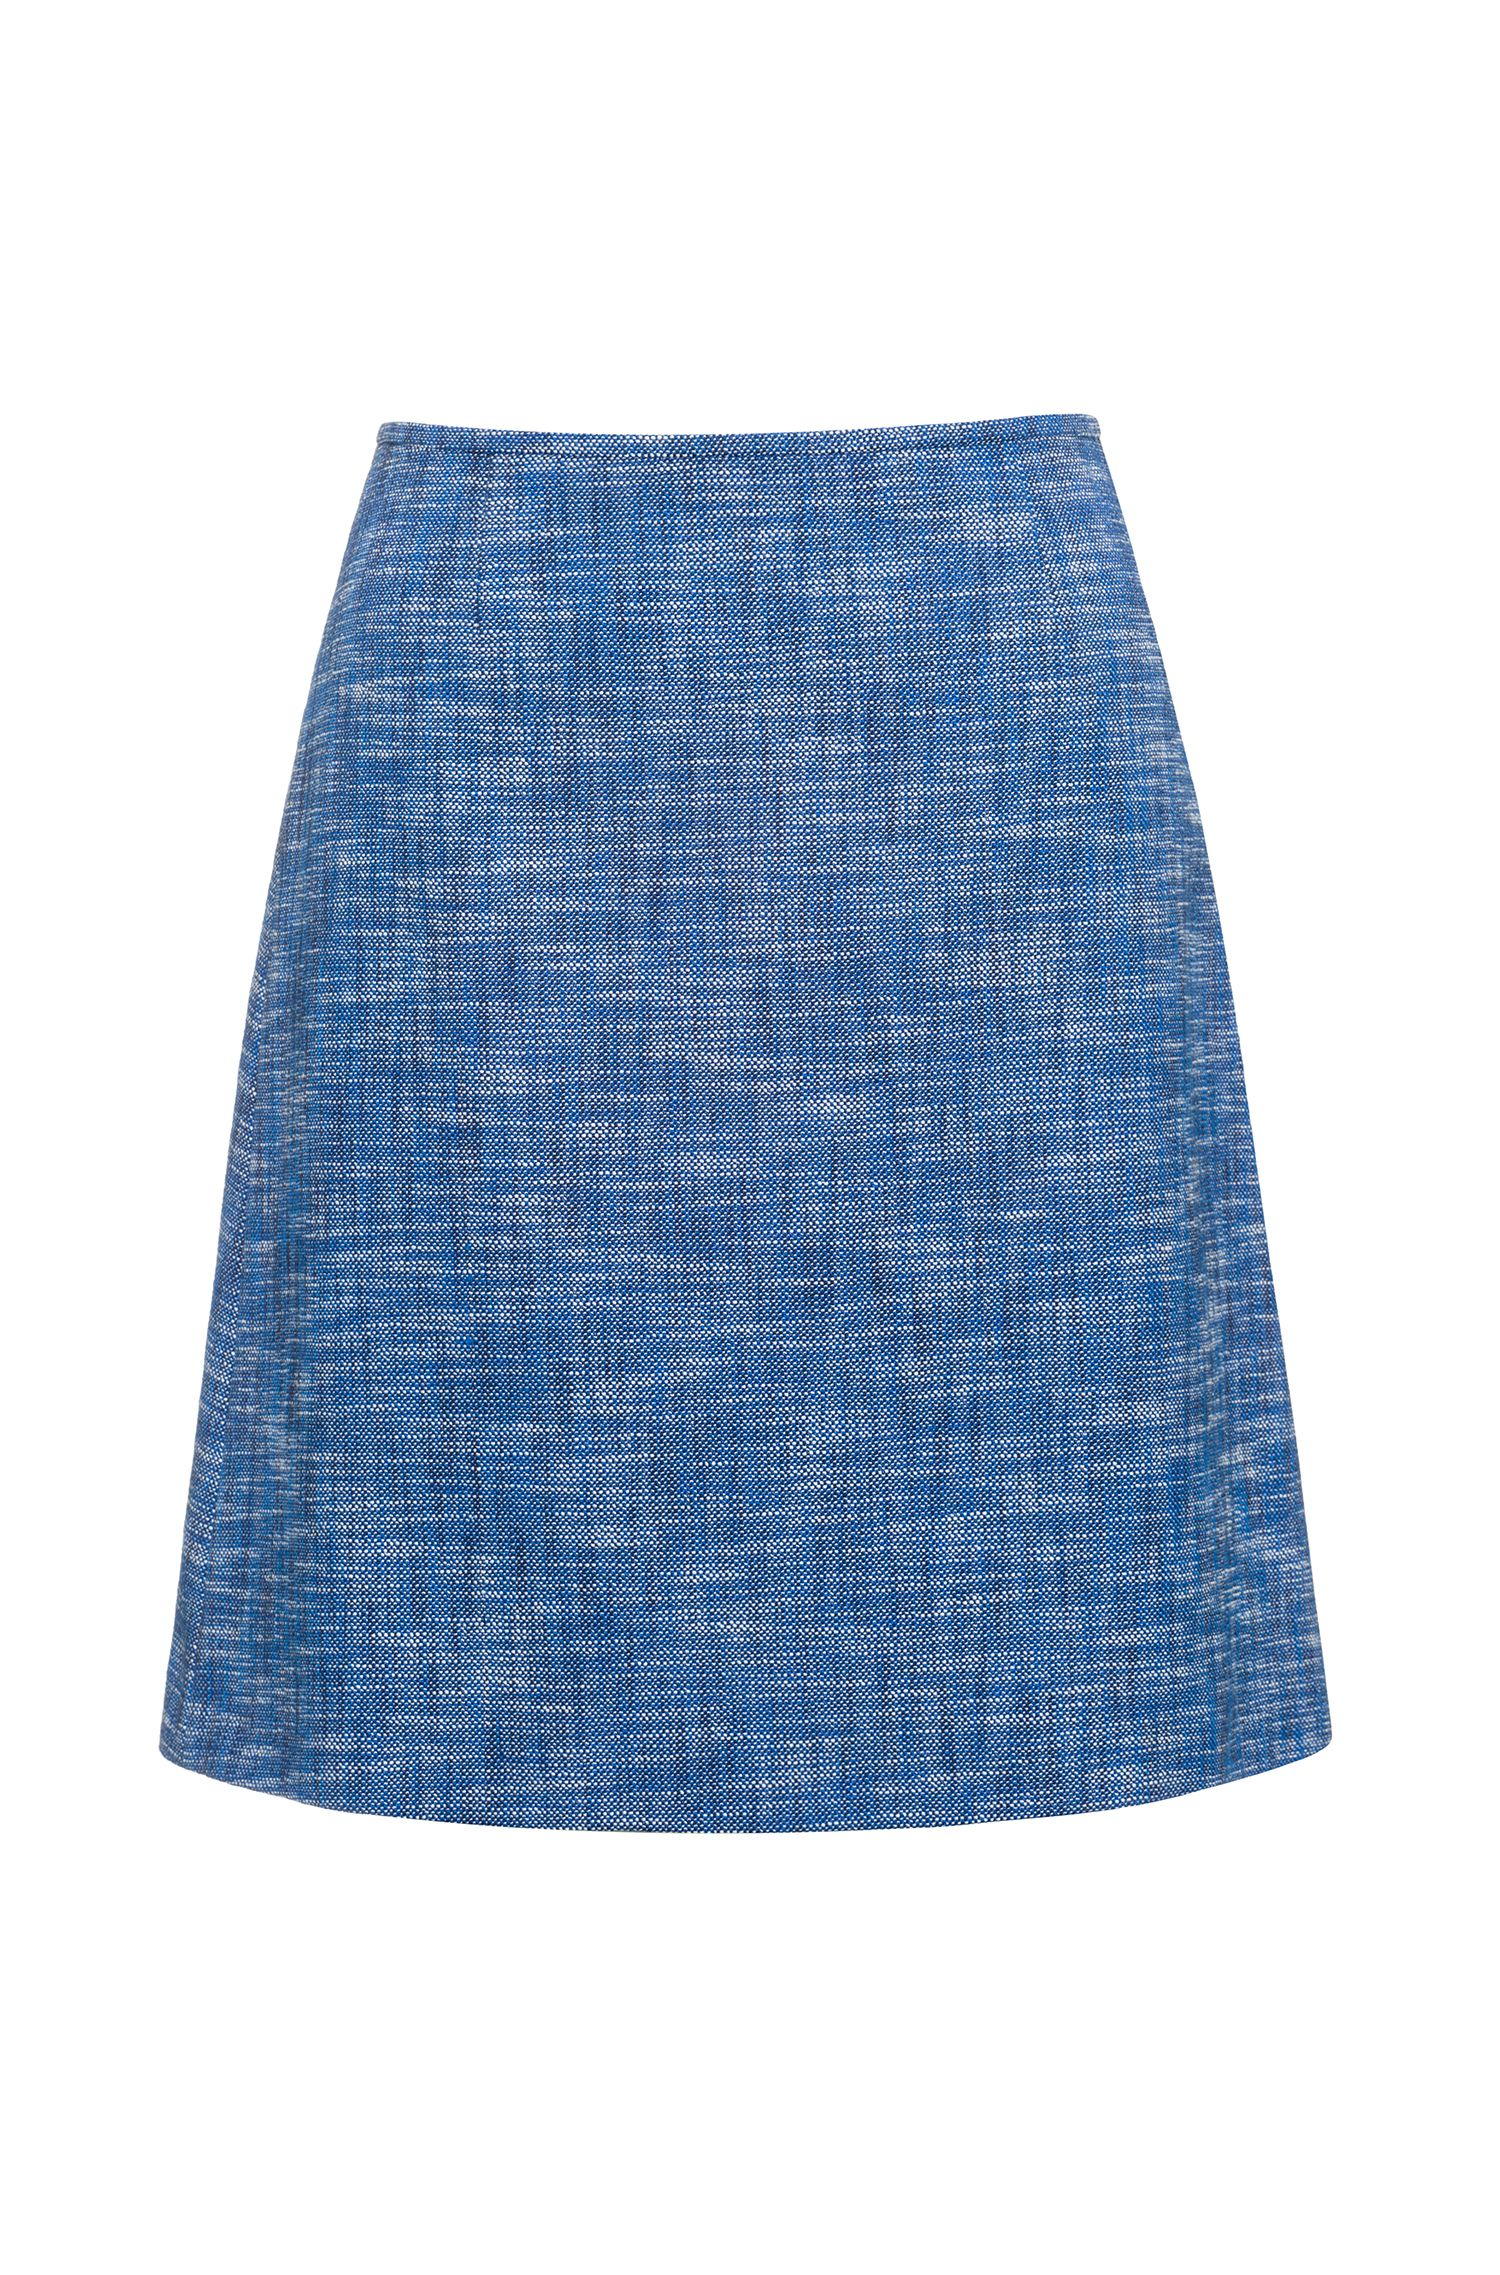 A-line skirt in cotton-blend tweed